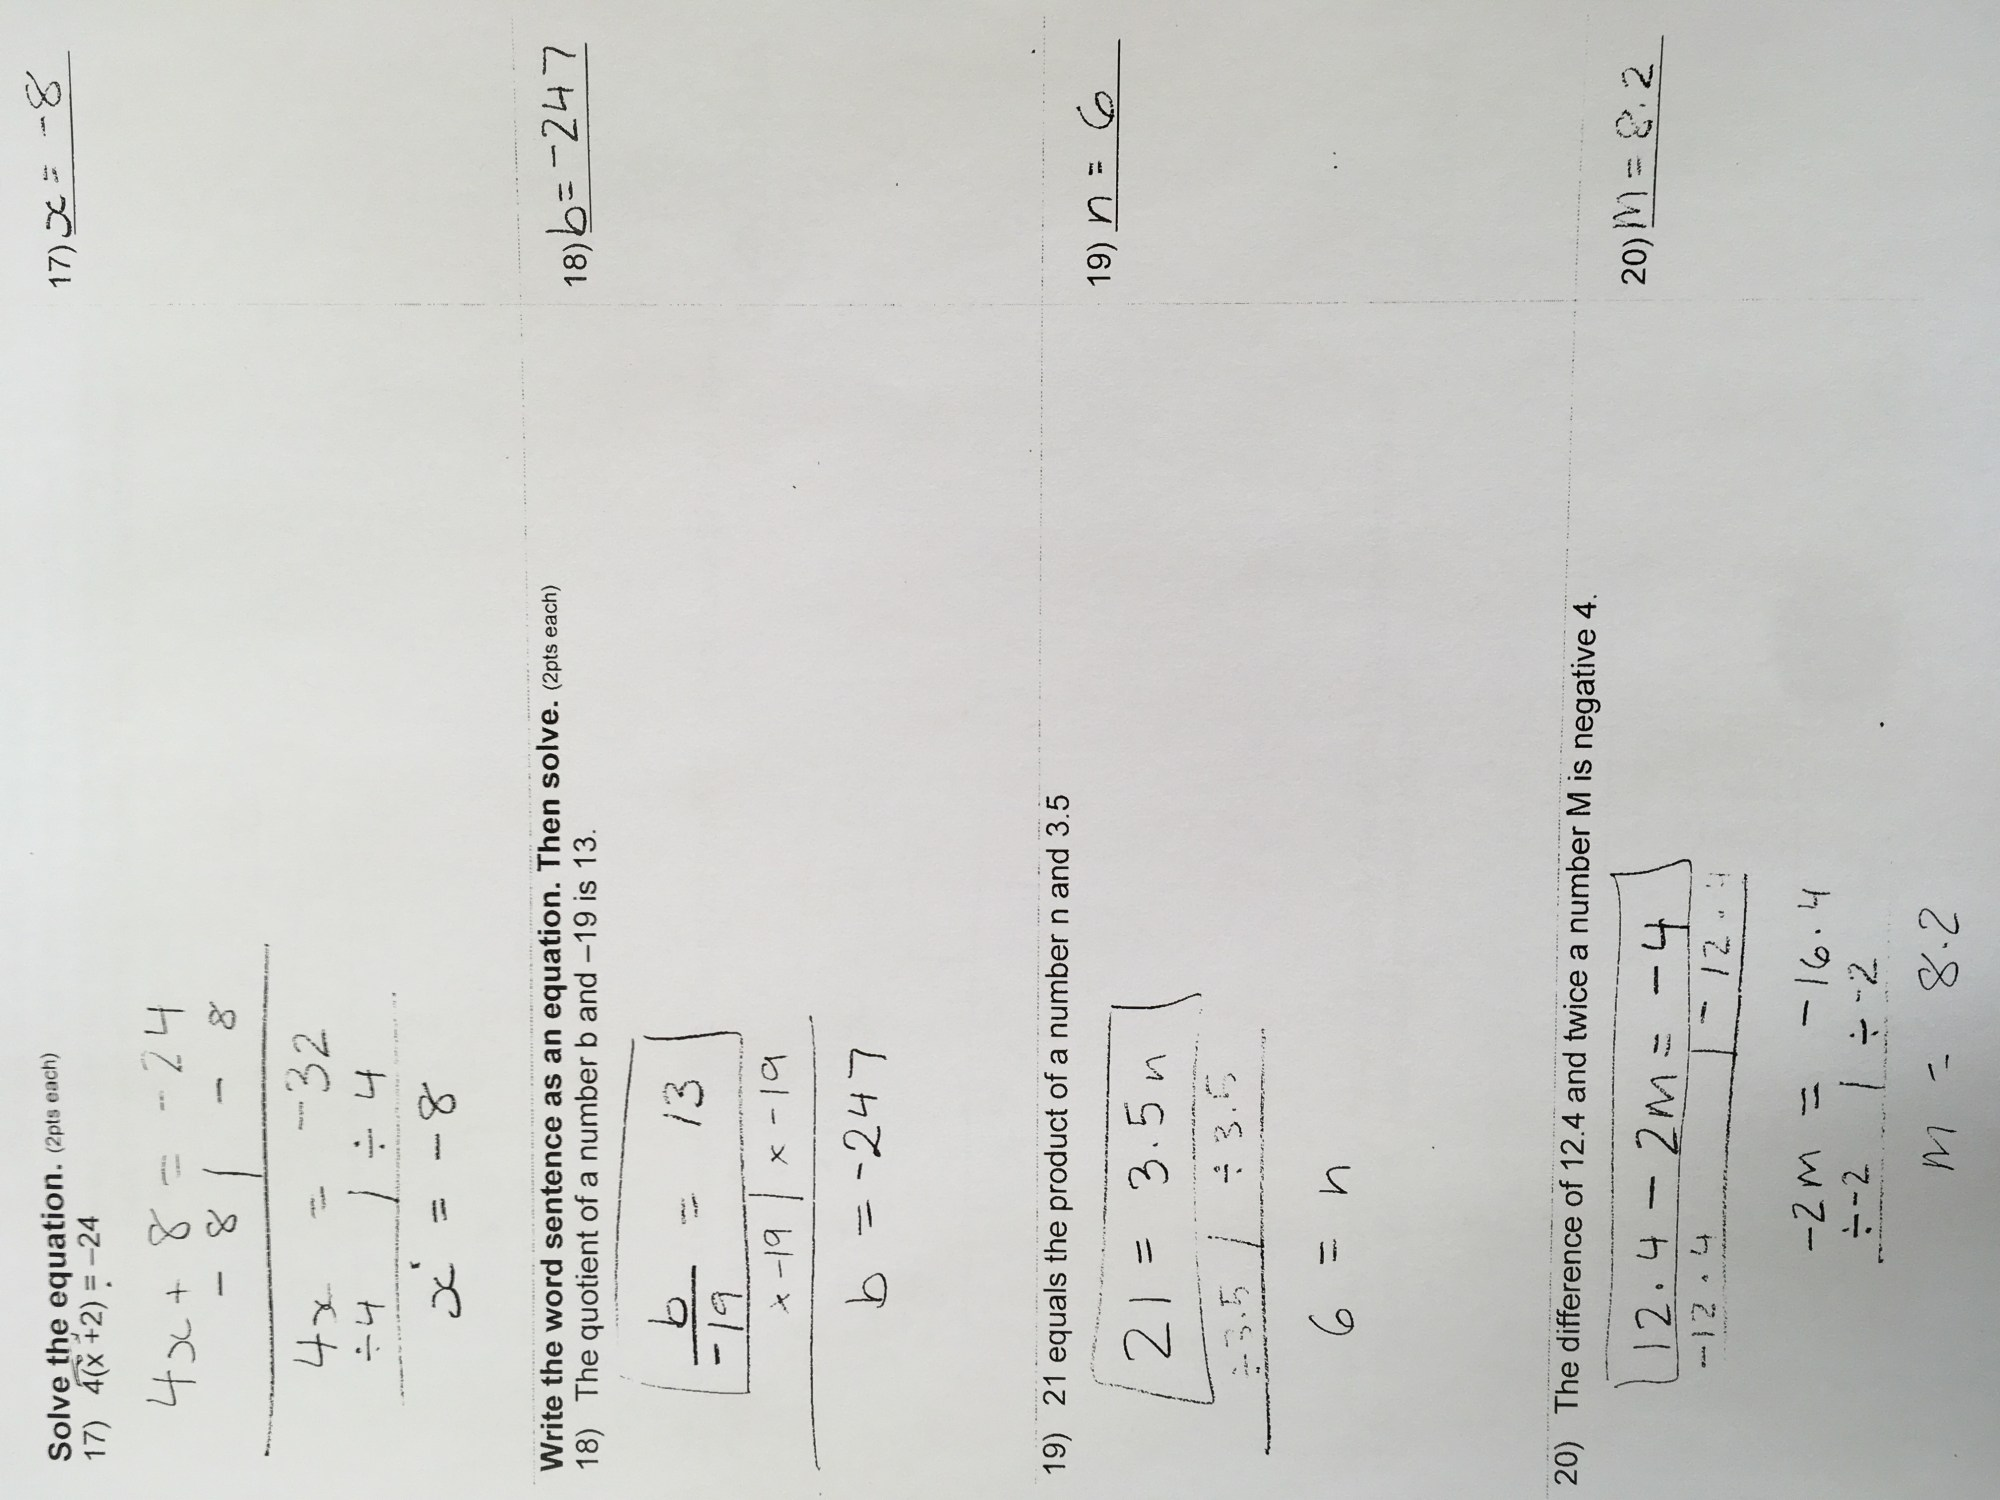 hight resolution of Homework Archives - Page 25 of 70 - Grades 7 \u0026 8/ Middle School Math